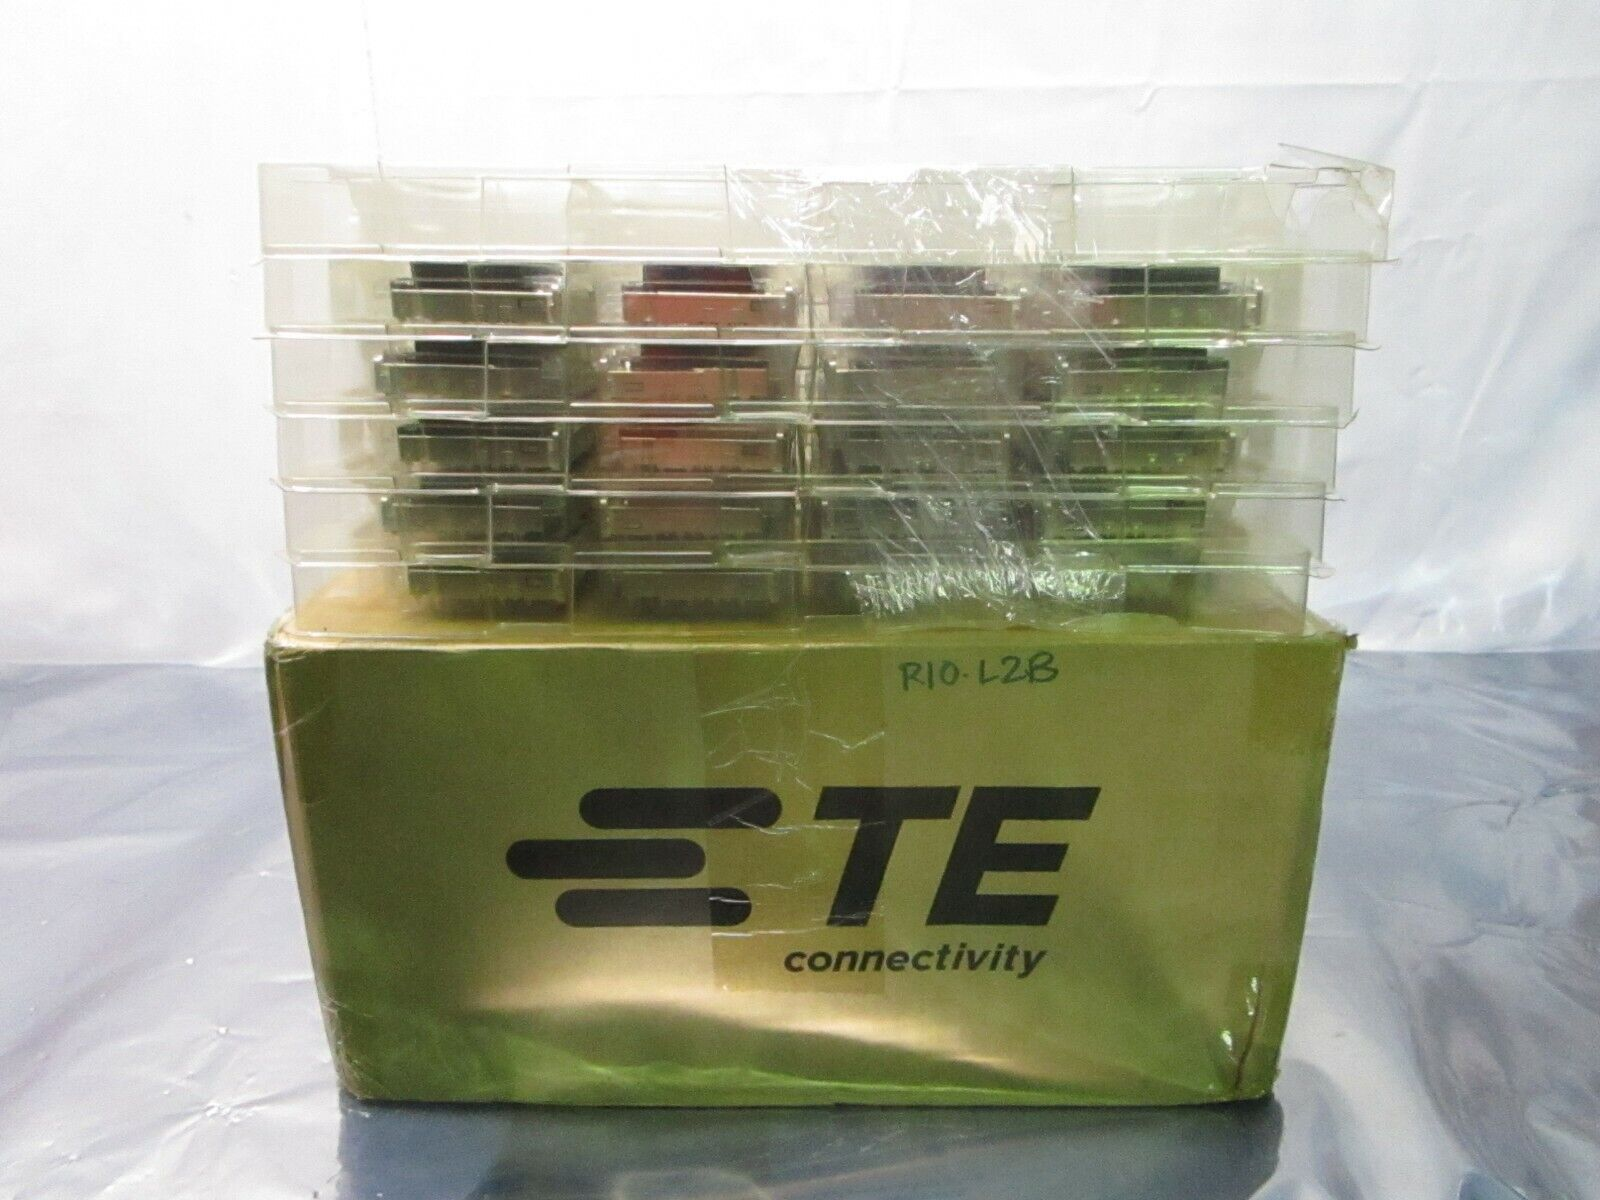 1 Lot of 40 TE connectivity AMP Brand 2170551-1 1X6 CAGE ASSEMBLY, 102304